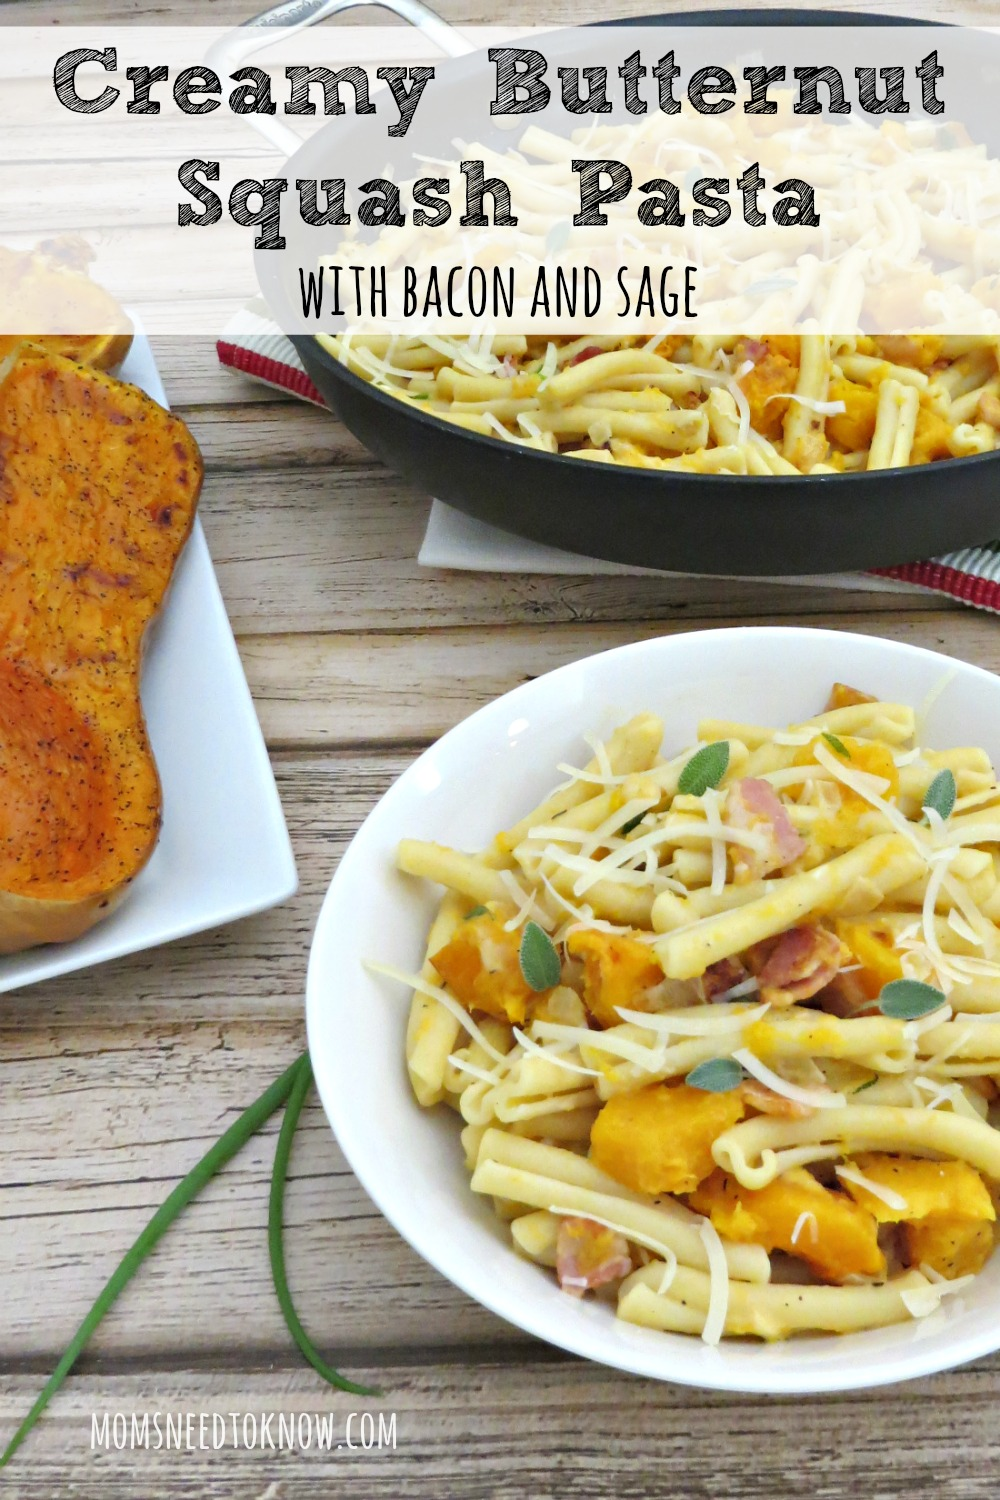 Taste the flavors of Fall with this creamy pasta dish with butternut squash, sage and bacon. Serve it with some crusty bread and a salad for a complete meal